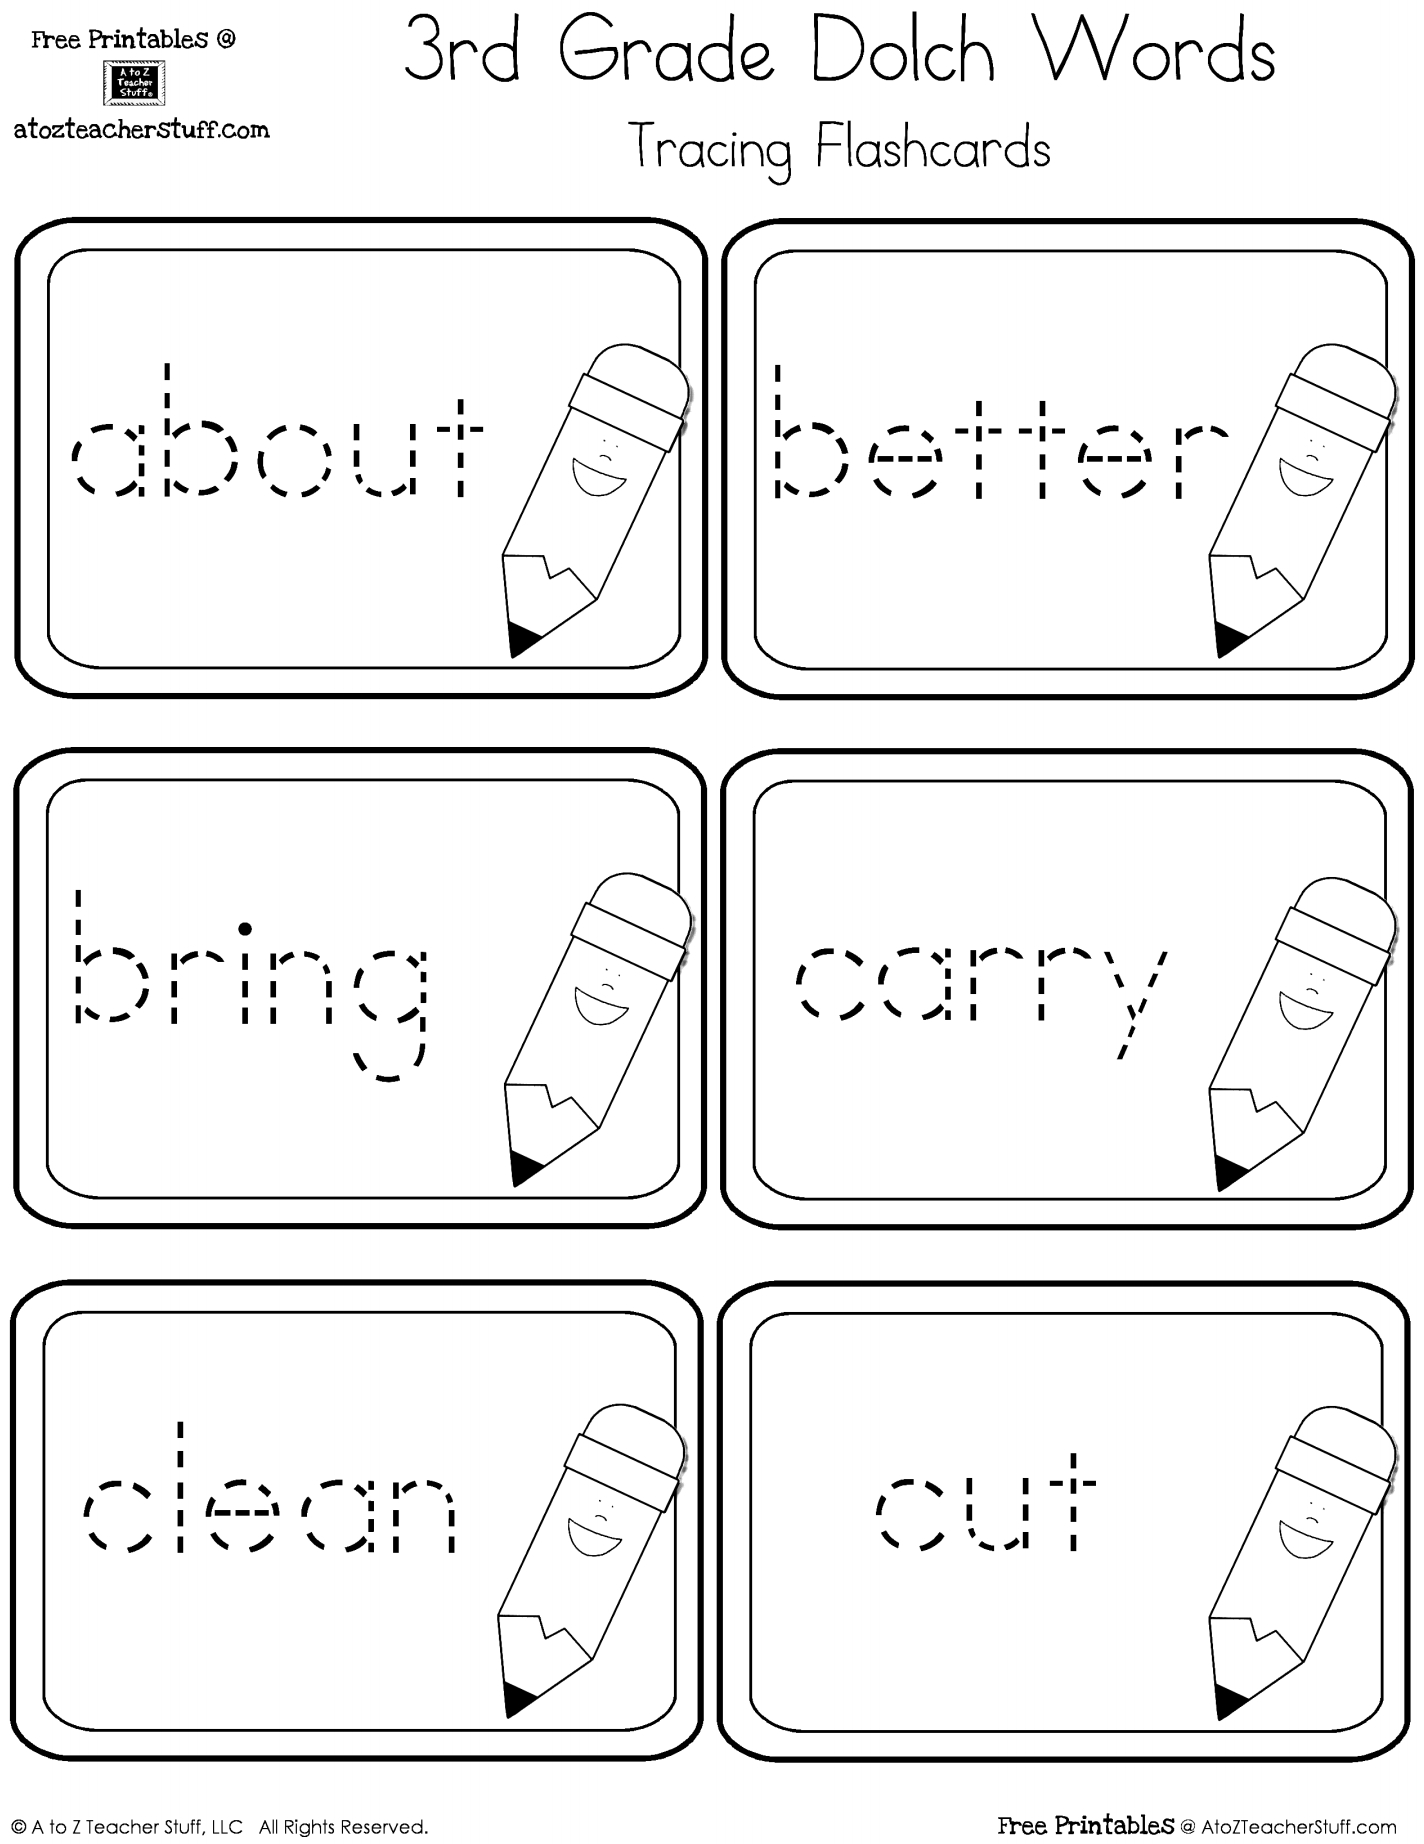 Third Grade Dolch Sight Words Tracing Flashcards | A To Z Teacher | Free Printable First Grade Sight Words Worksheets